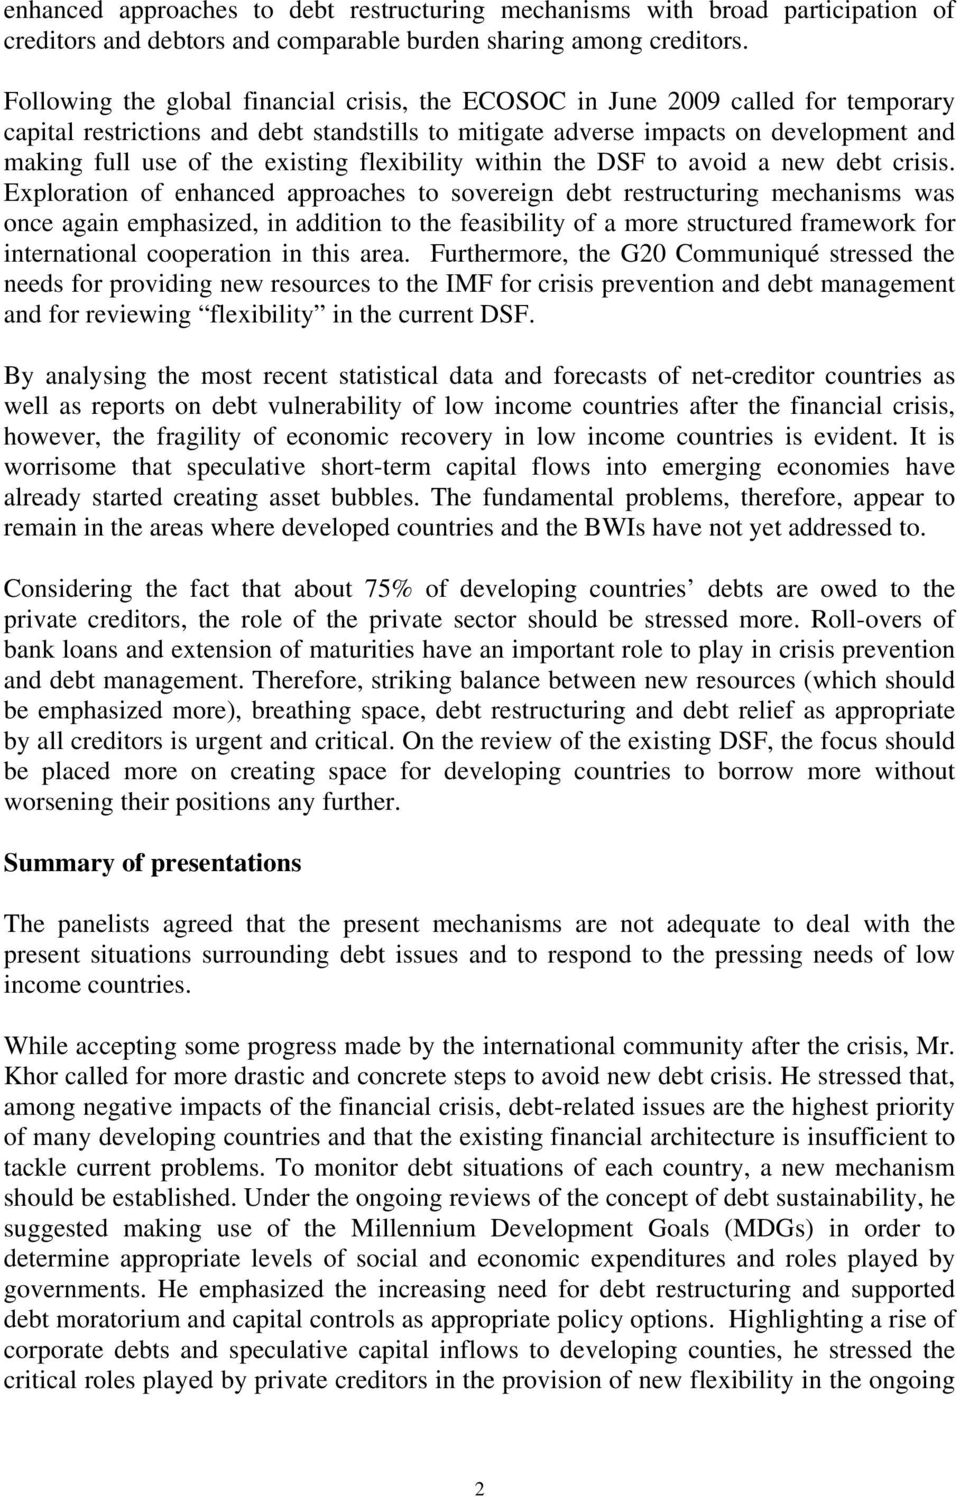 existing flexibility within the DSF to avoid a new debt crisis.